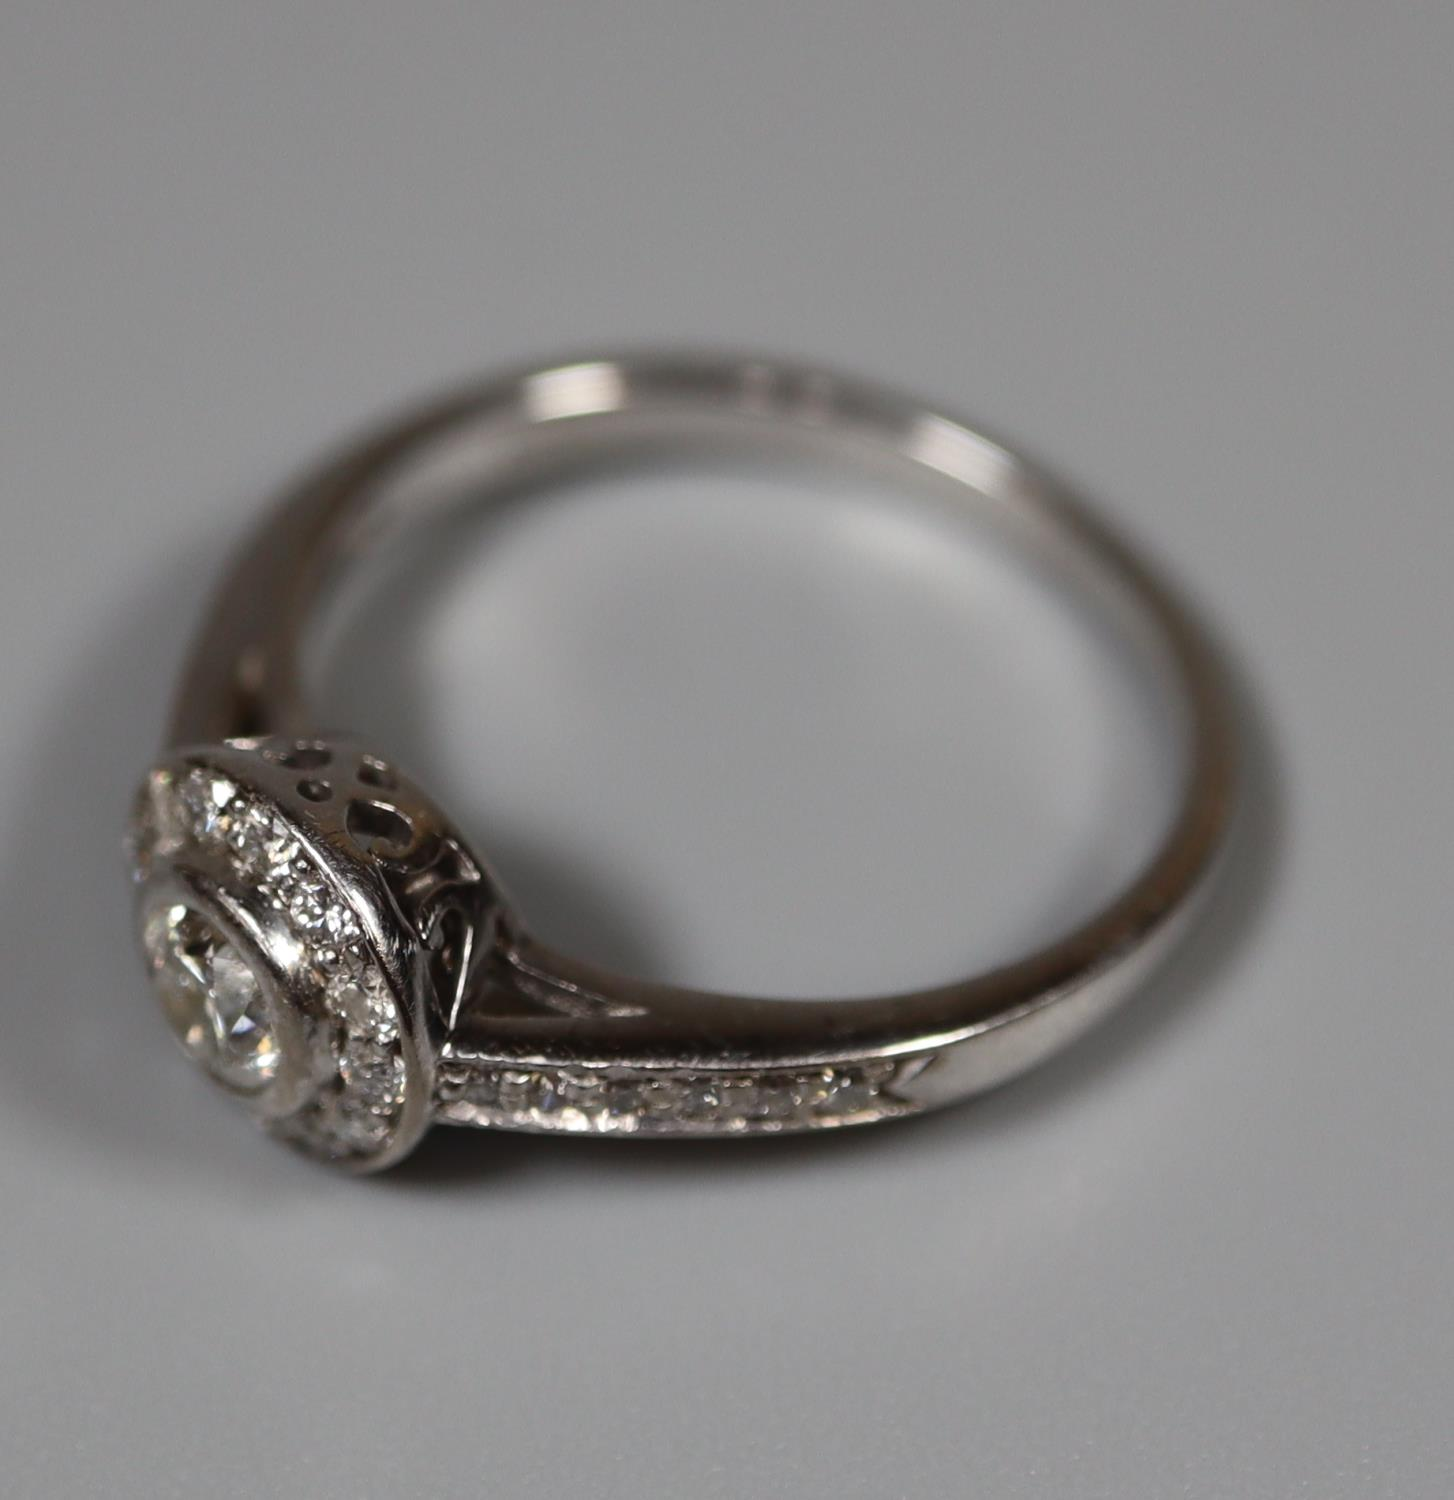 18ct white gold and diamond halo ring. Size L. Approx size L Approx weight 3 grams. (B.P. 21% + VAT) - Image 3 of 3